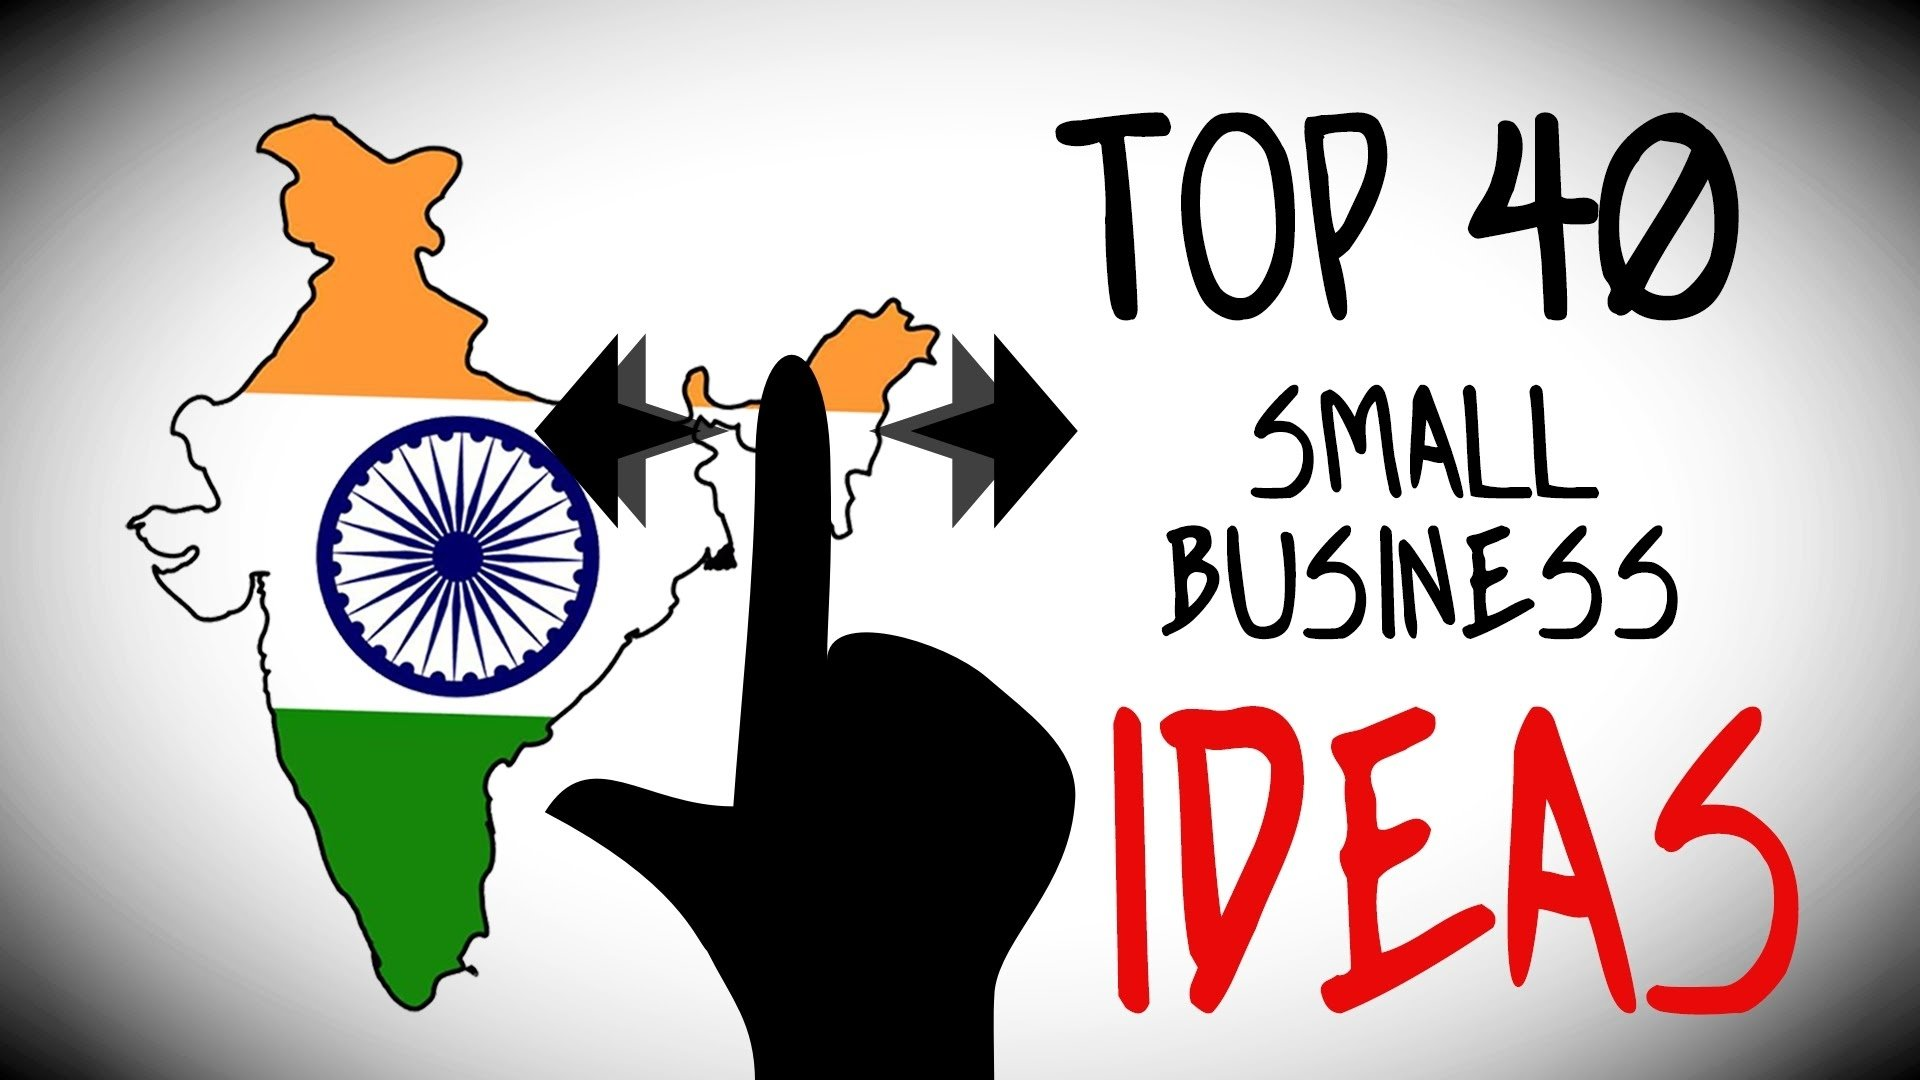 10 Great Business Ideas With Low Investment top 40 small business ideas in india for starting your own business 7 2021